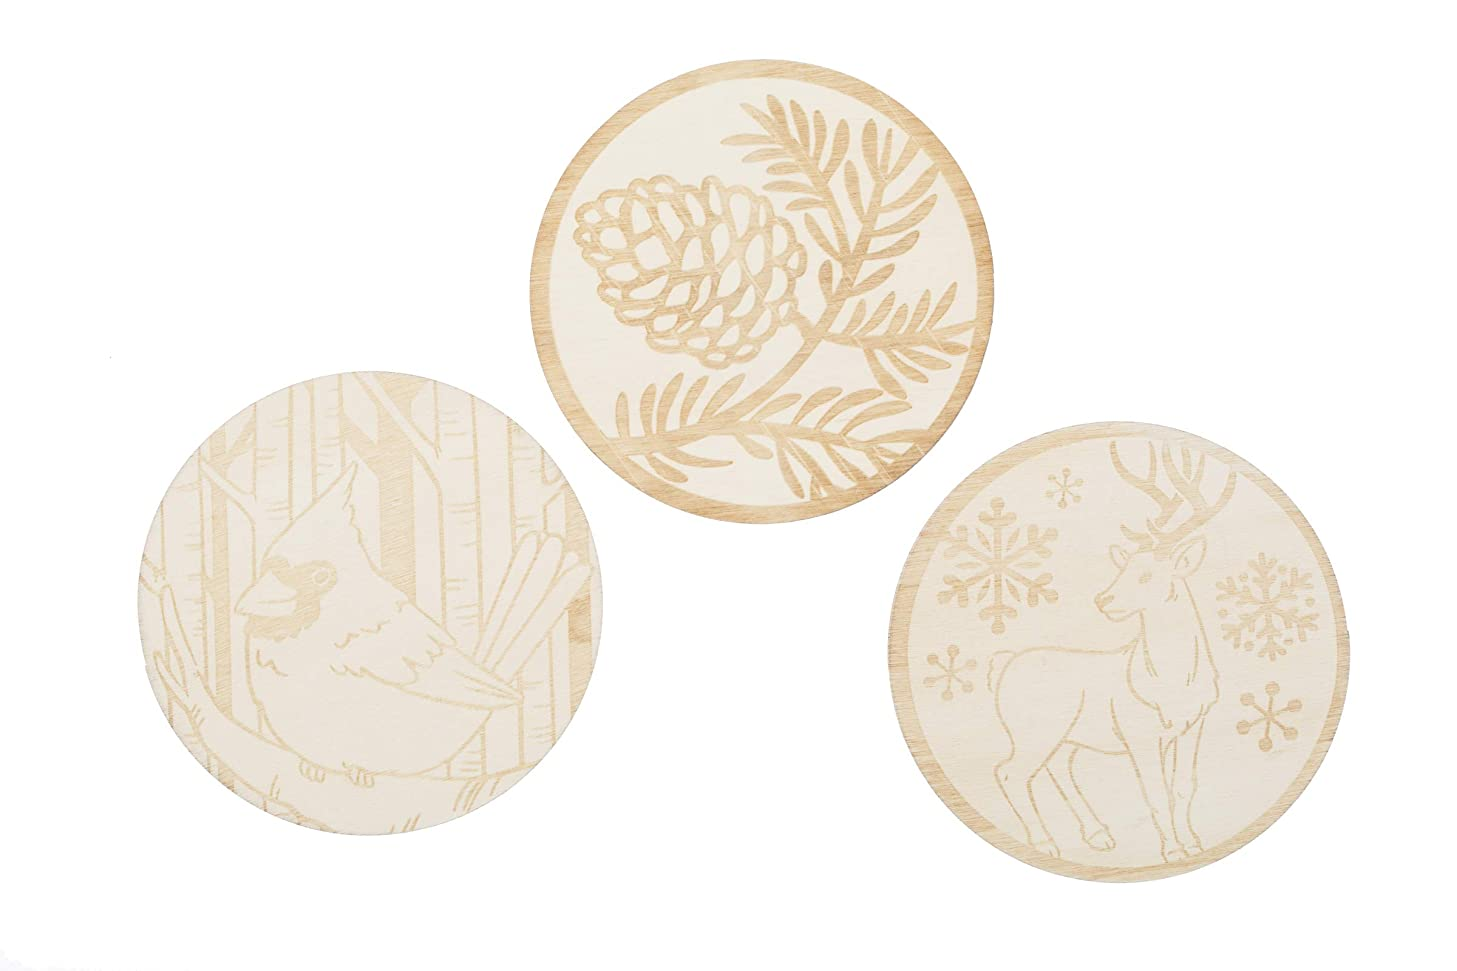 Darice 30075852 Wood Shapes: Assorted Etched Woodland Designs, Unfinished, 4 Pieces